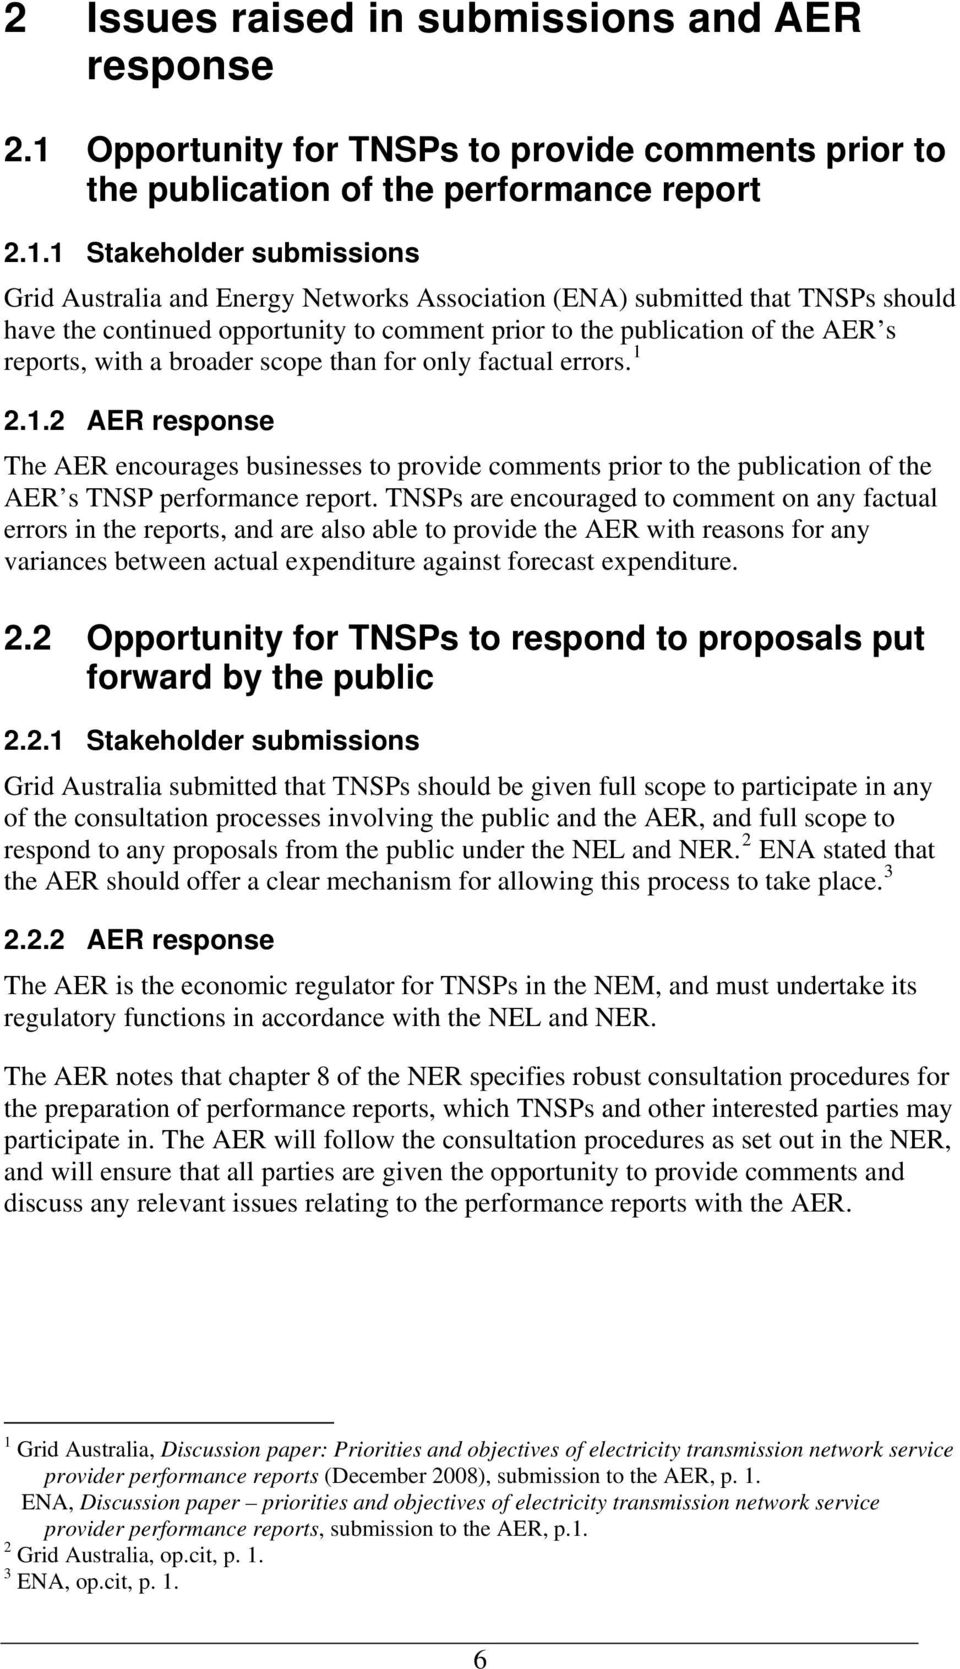 1 Stakeholder submissions Grid Australia and Energy Networks Association (ENA) submitted that TNSPs should have the continued opportunity to comment prior to the publication of the AER s reports,